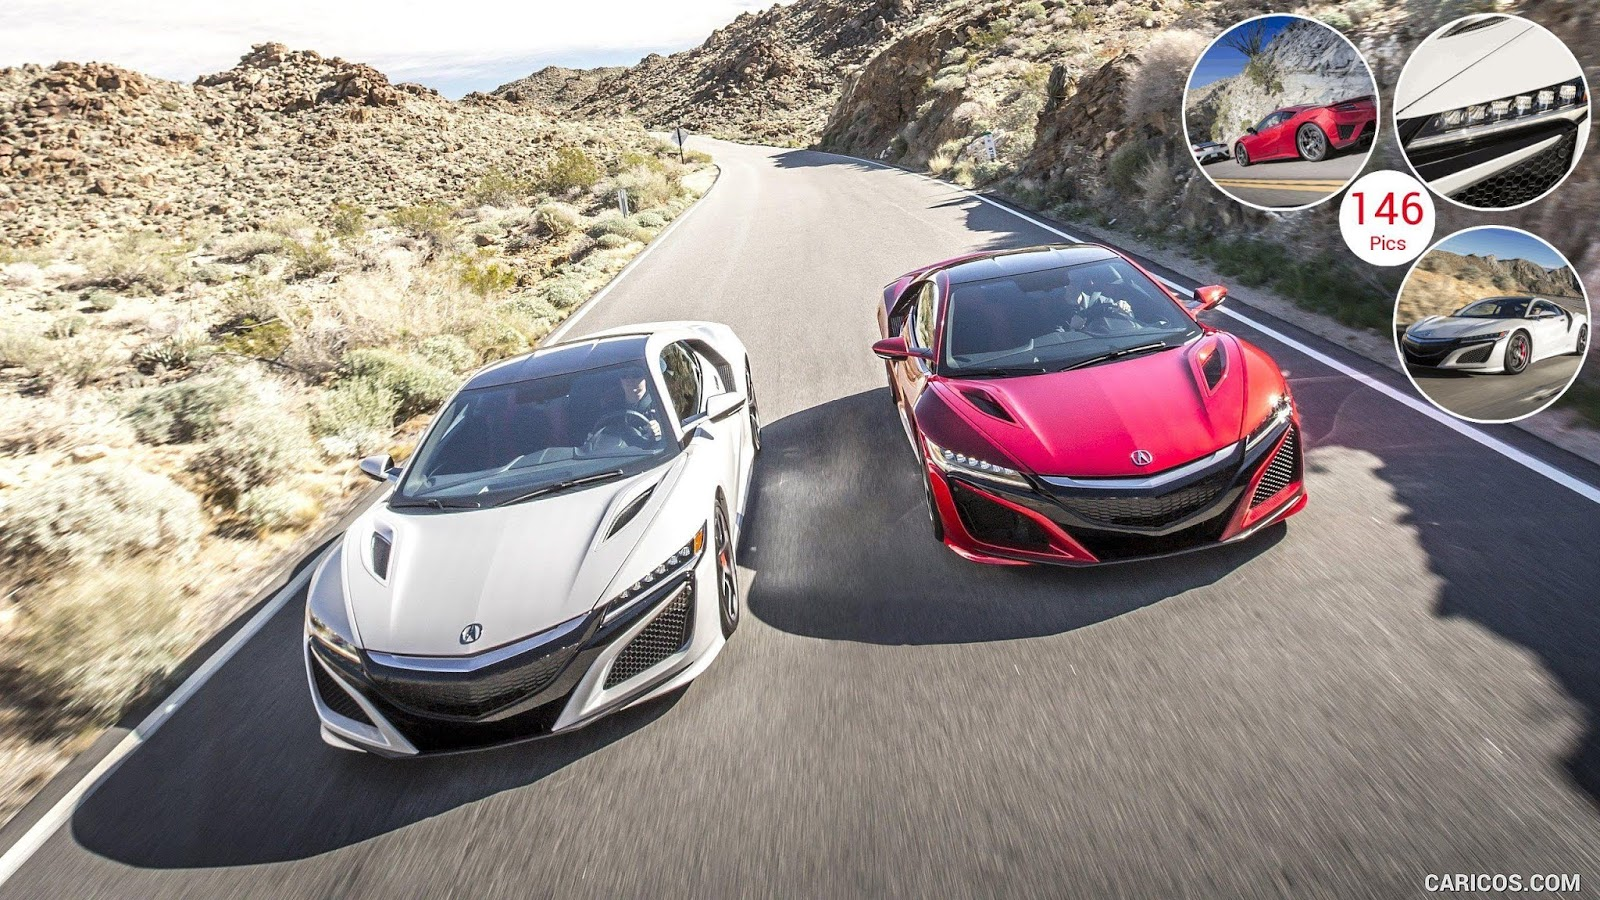 2017 Acura NSX Red and White  HD